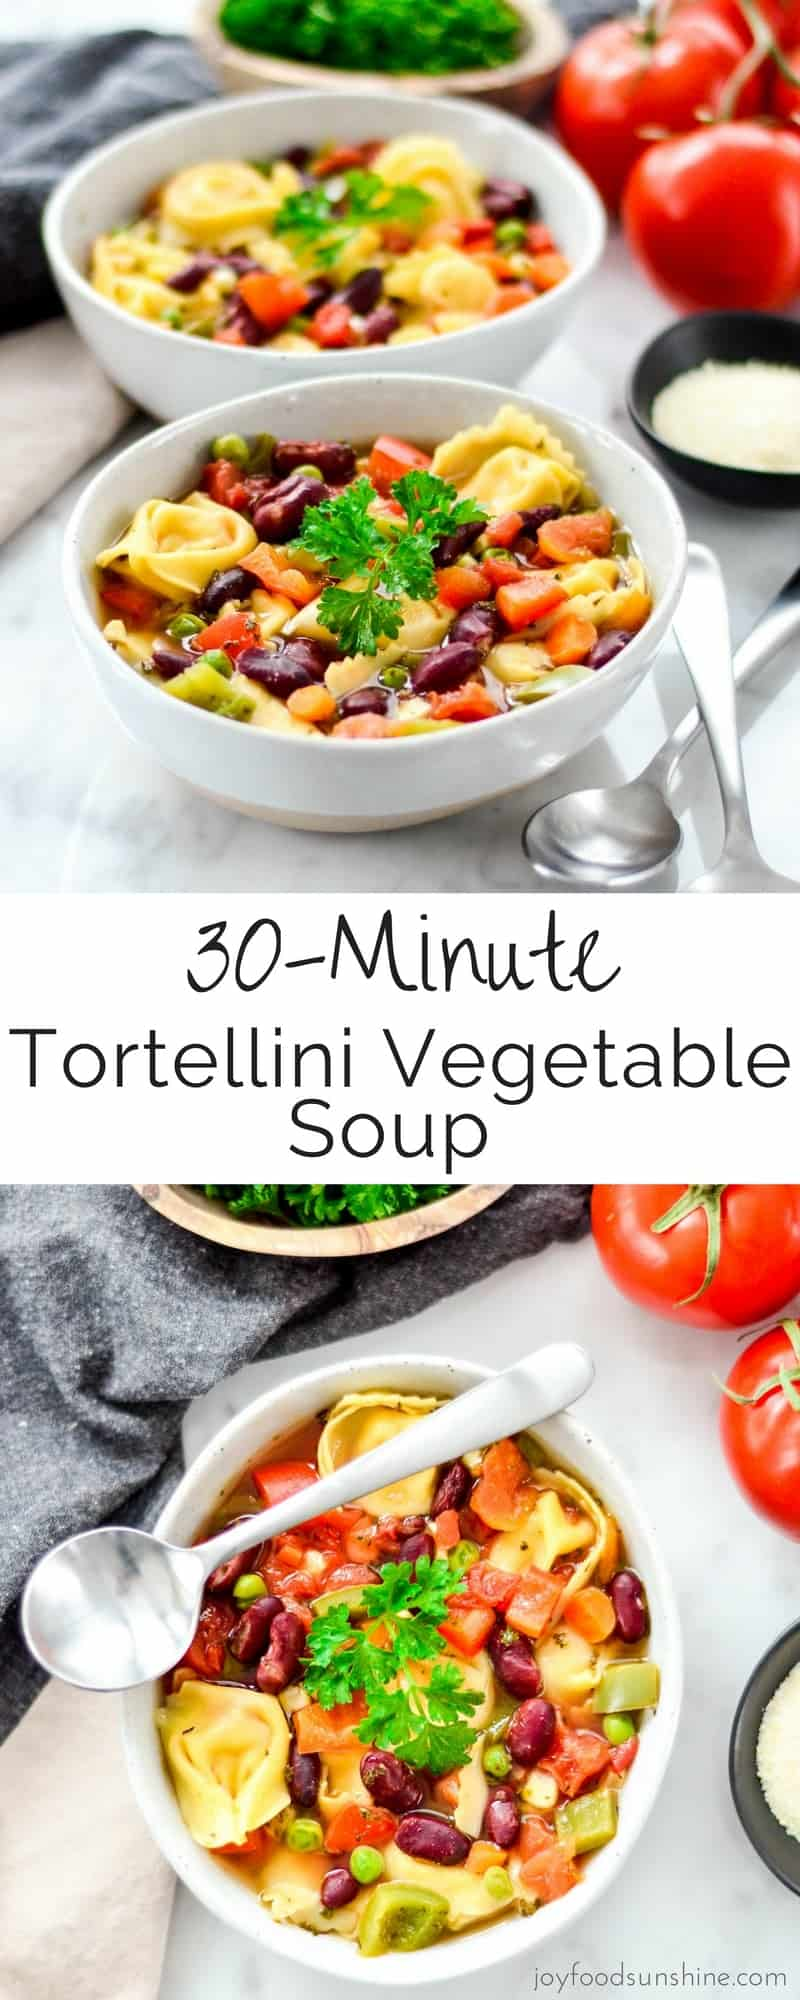 30 Minute Tortellini Vegetable Soup! An easy, healthy & delicious dinner recipe perfect for the busiest weeknights!